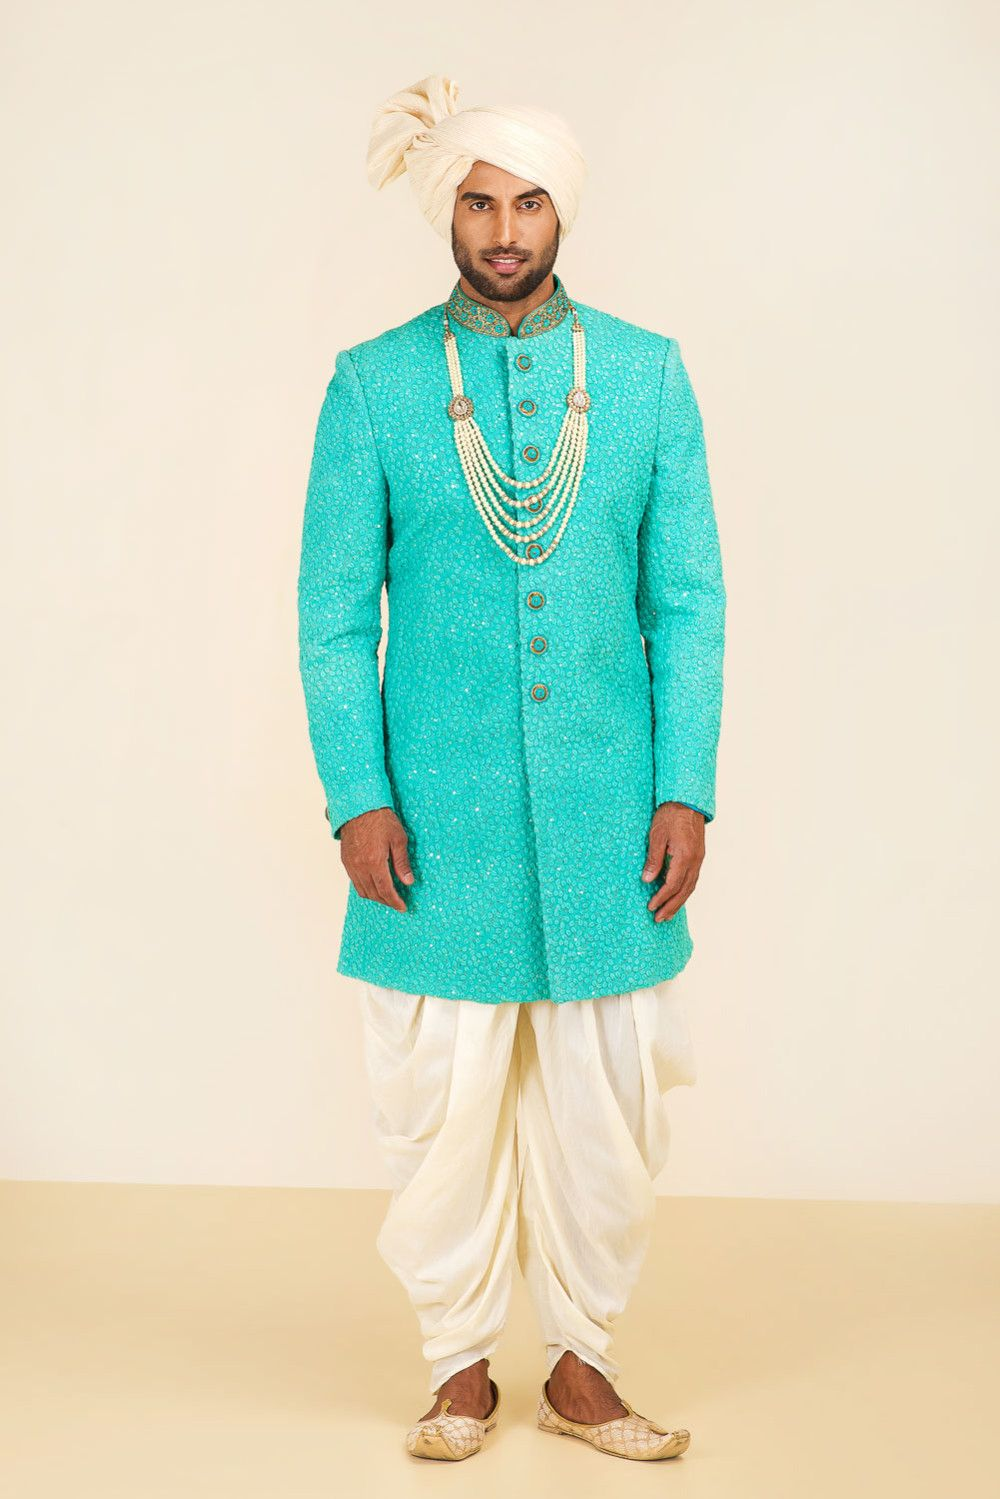 Lovely Latest Wedding Suits For Indian Groom Images - Wedding Ideas ...